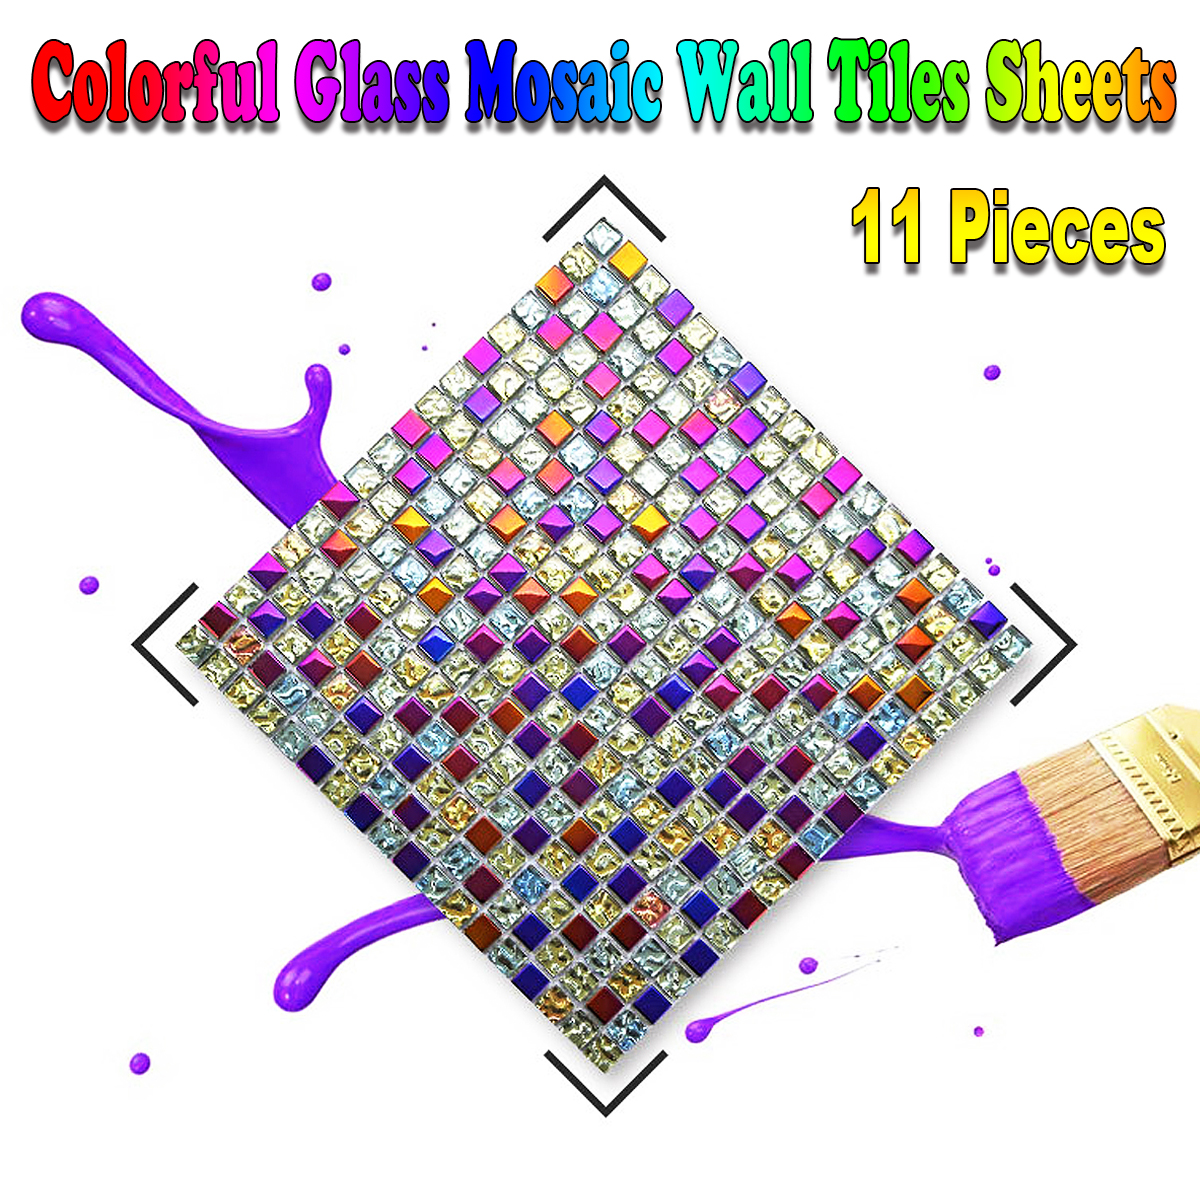 11 Pieces Colorful Glass Mosaic Wall Tiles Sheets for Living room Bathroom Pub Bar Wall Stickers European Modern Style Decor